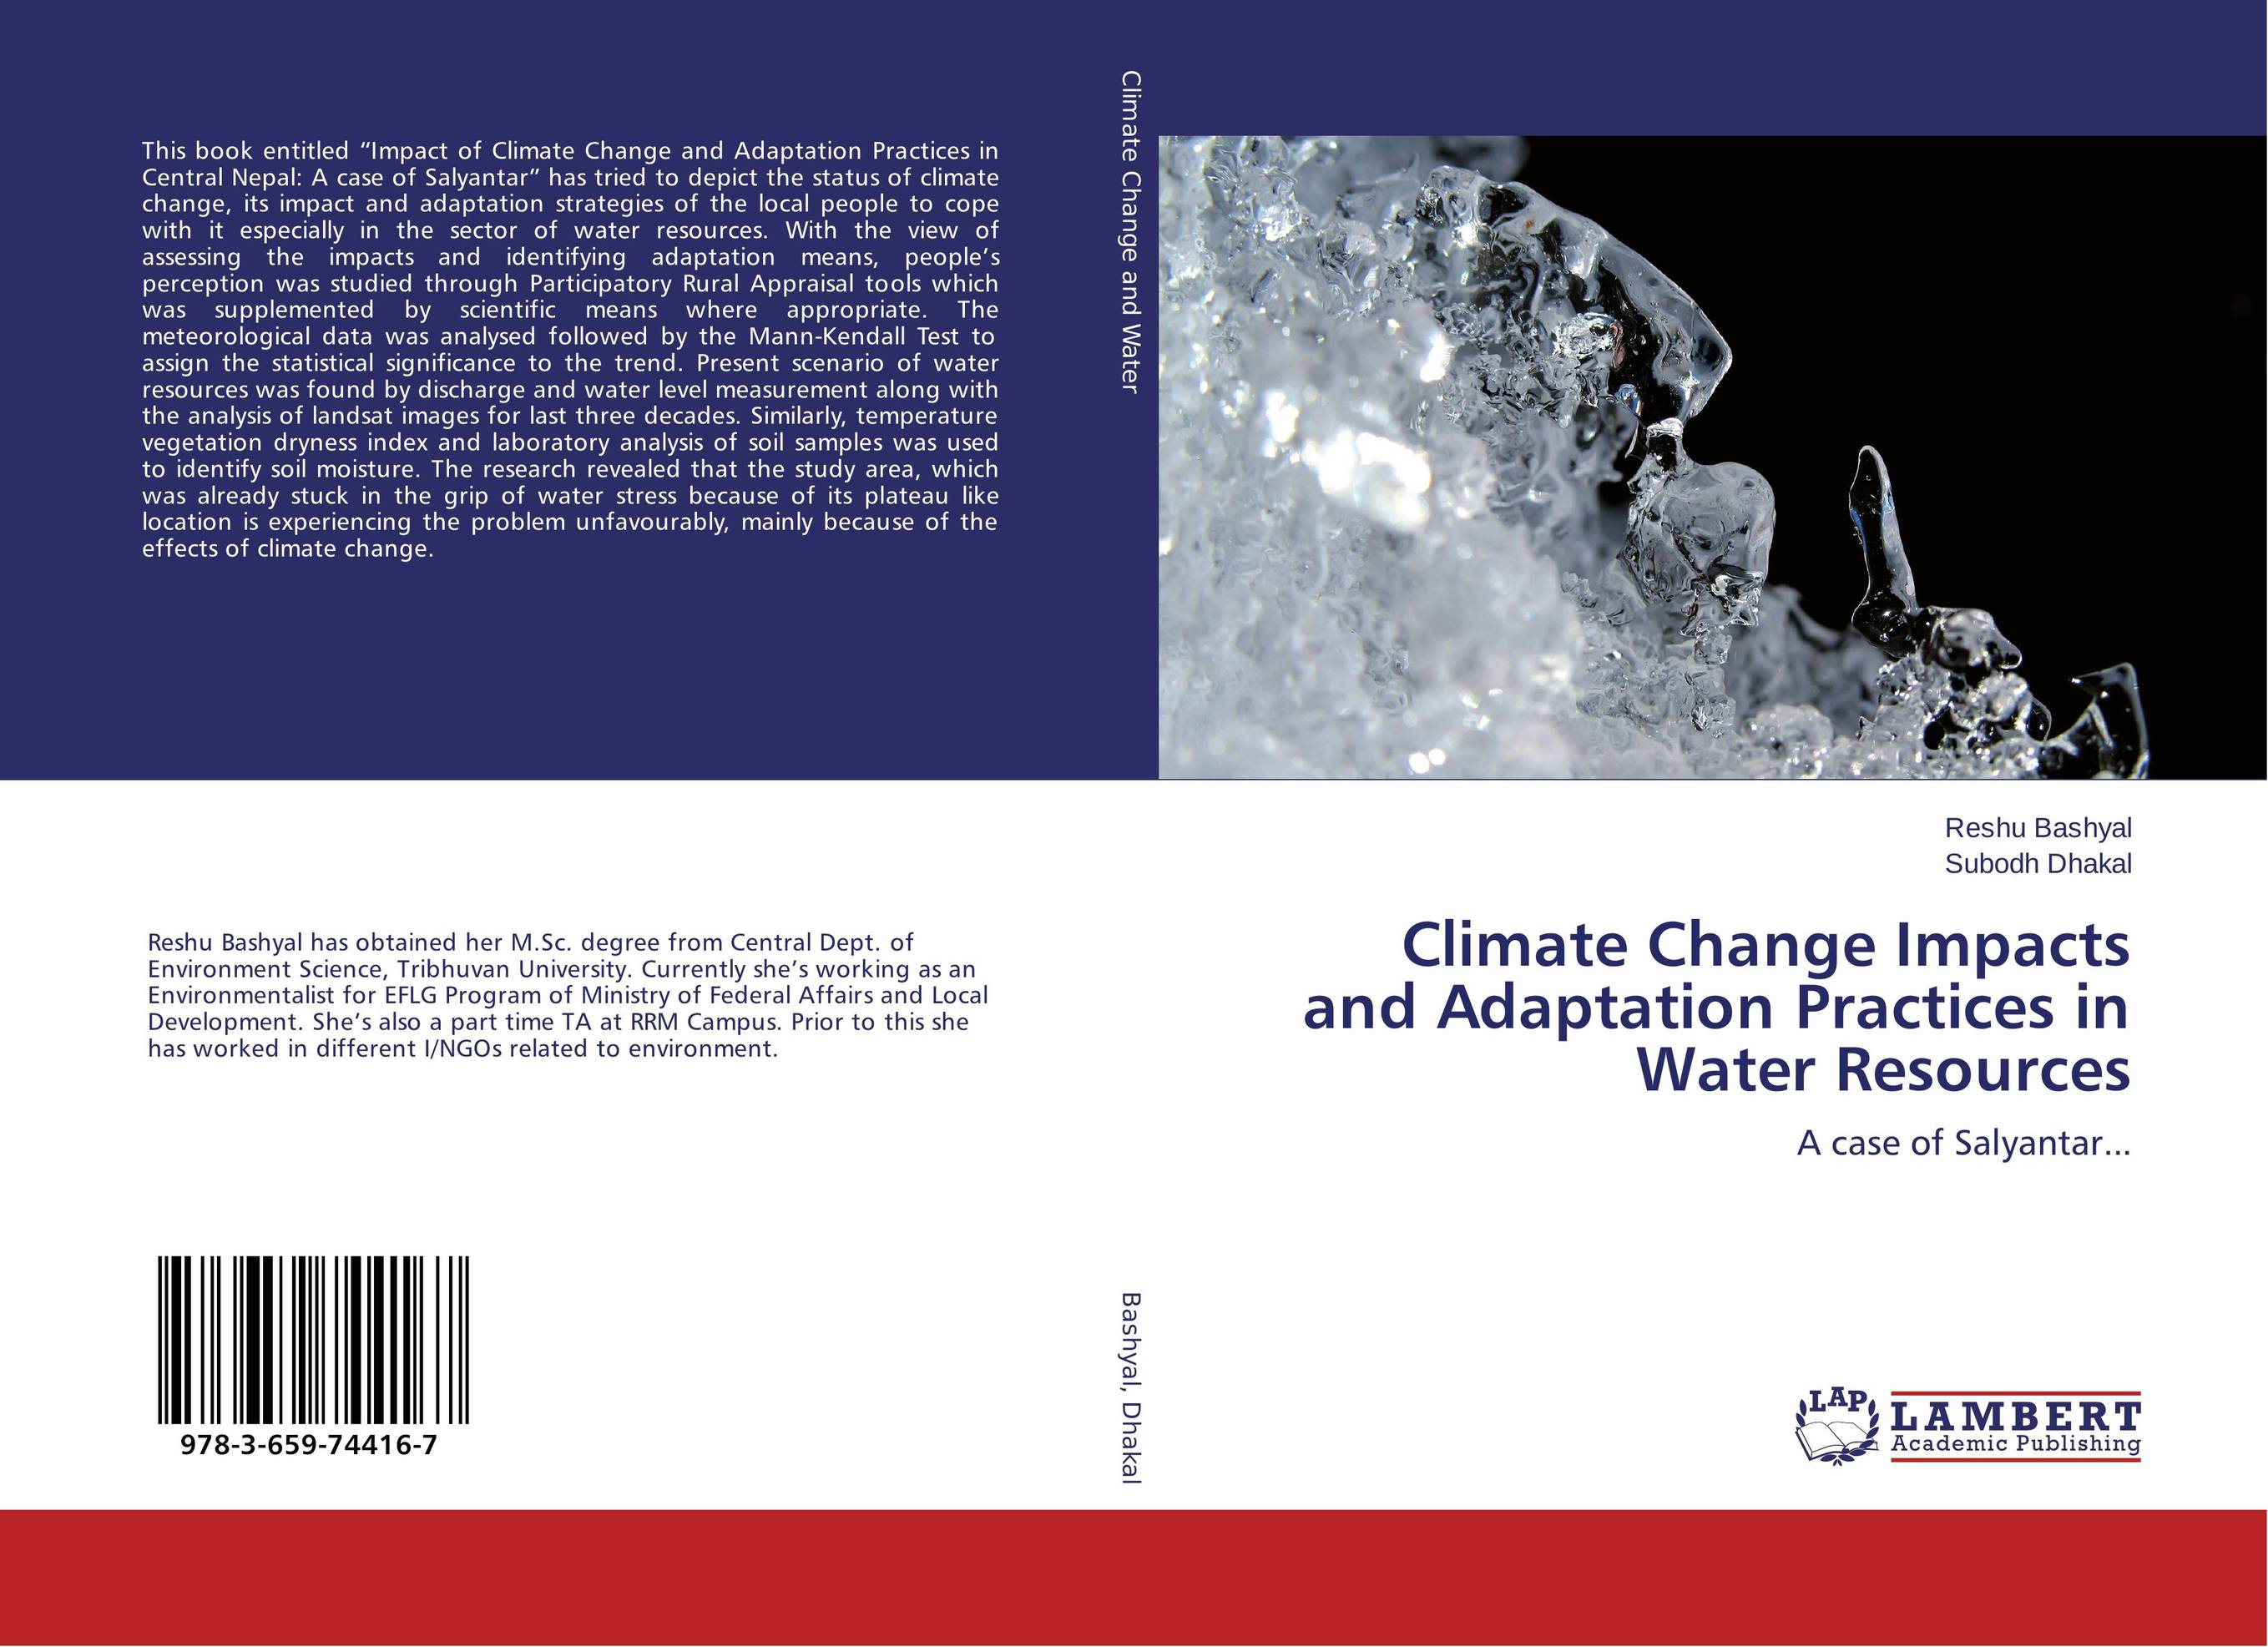 Climate Change Impacts and Adaptation Practices in Water Resources bride of the water god v 3